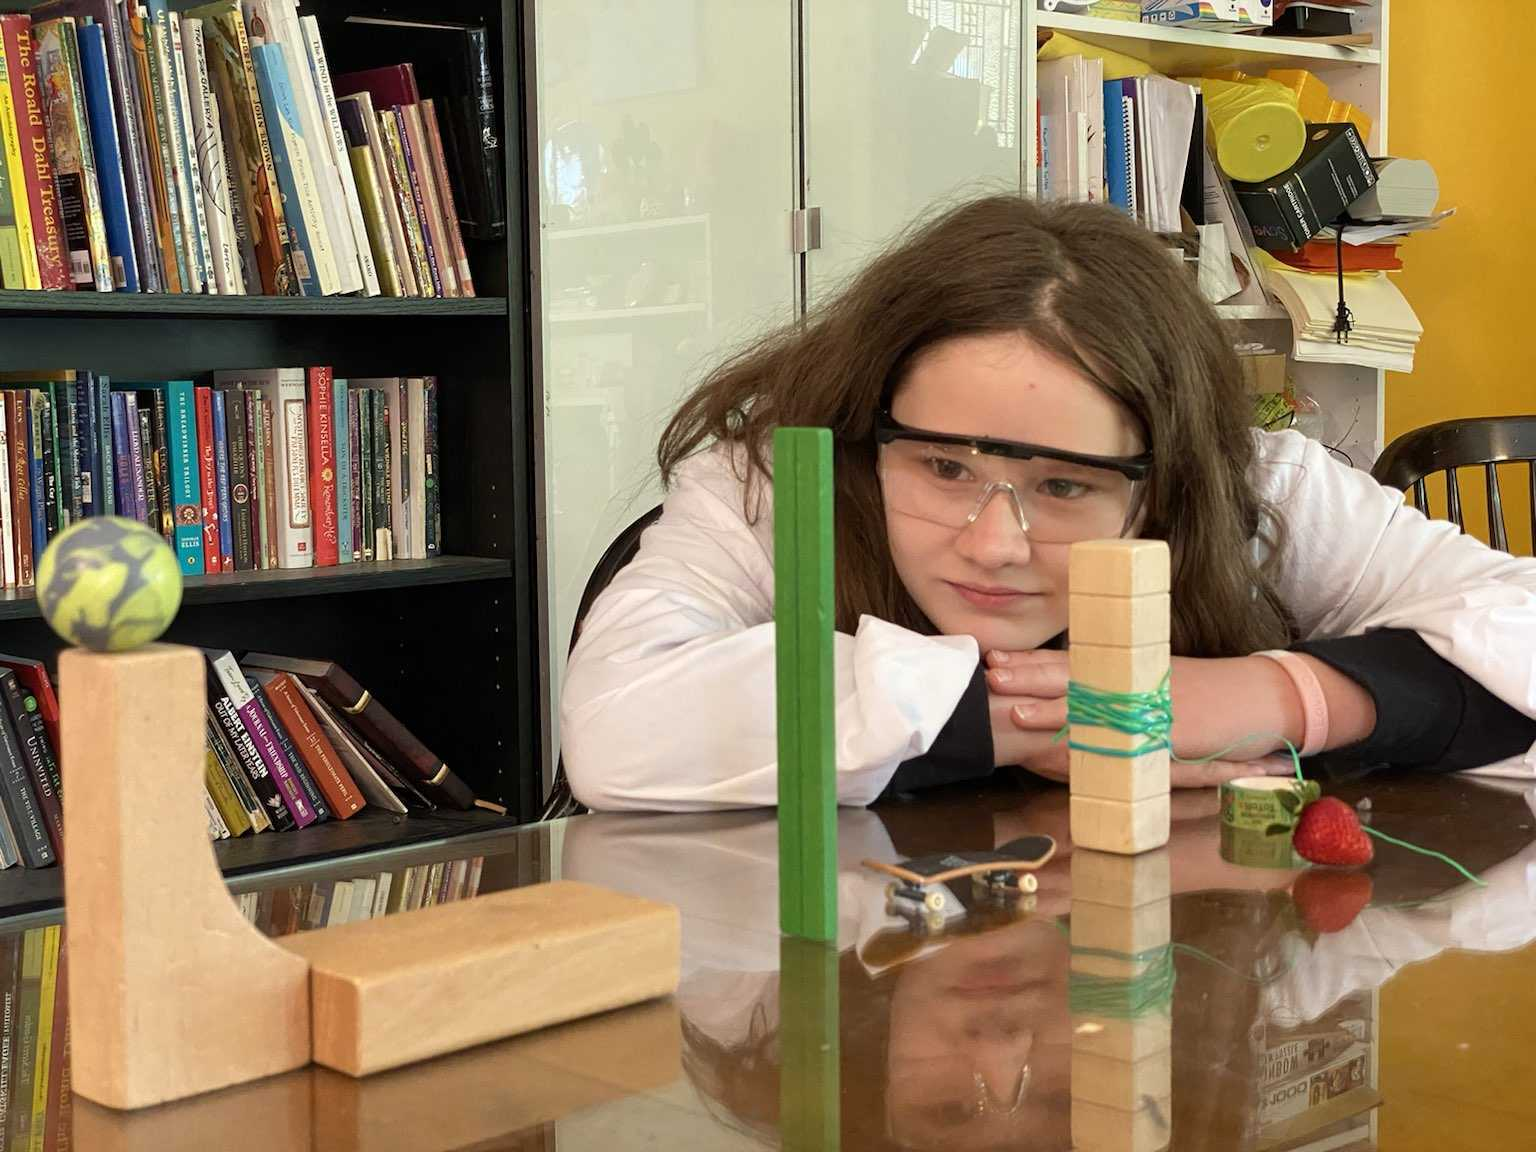 A child in a lab coat and protective eye ware ponders a Rube Goldberg machine made of blocks and toys.